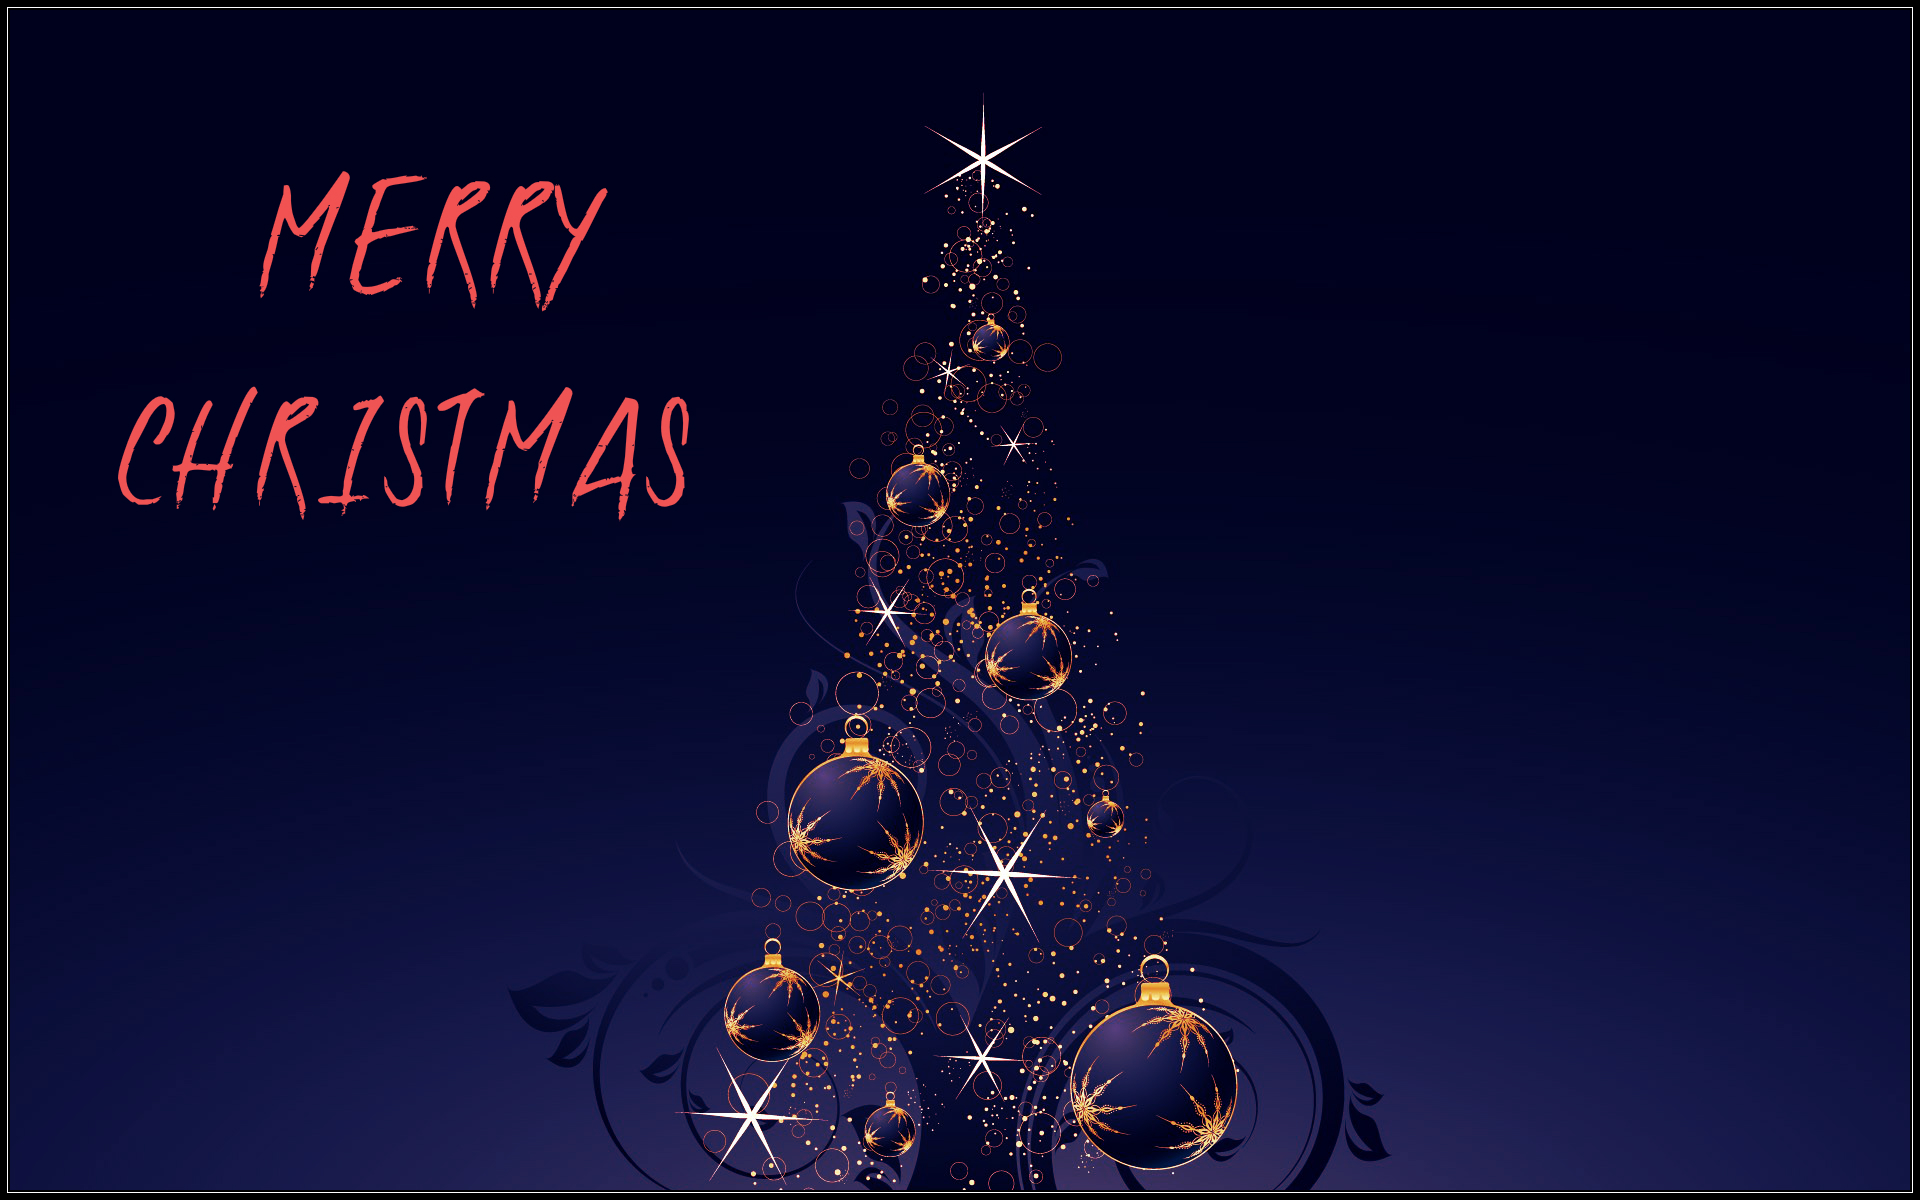 100 Holiday Desktop Backgrounds Hd Wallpapers: Merry Christmas Wallpapers, Pictures, Images